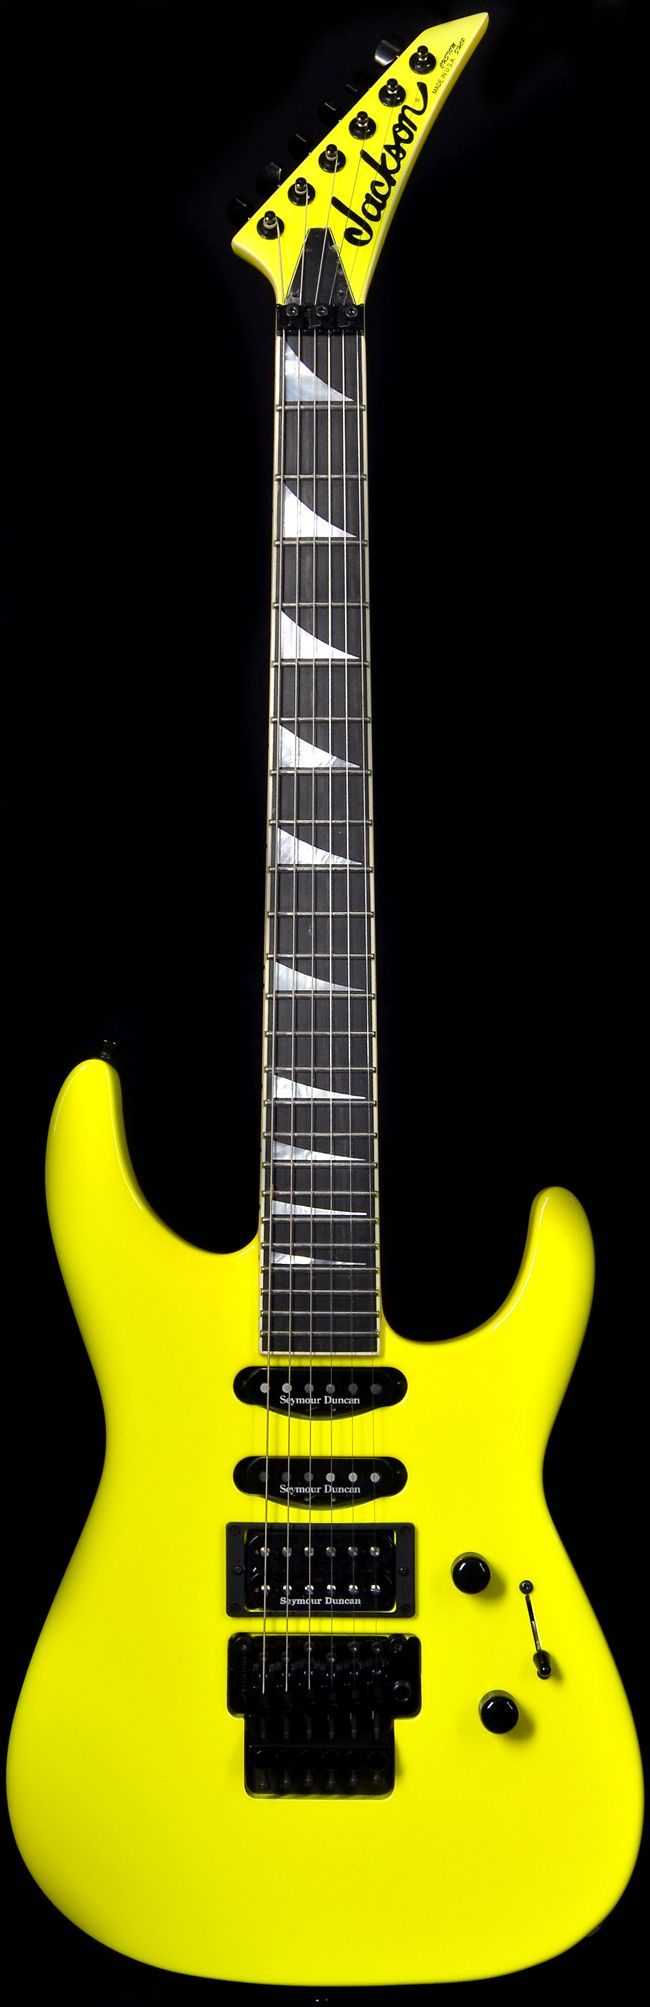 Wild West Guitars : Jackson USA Custom Shop Select SL1 Soloist Neon Yellow